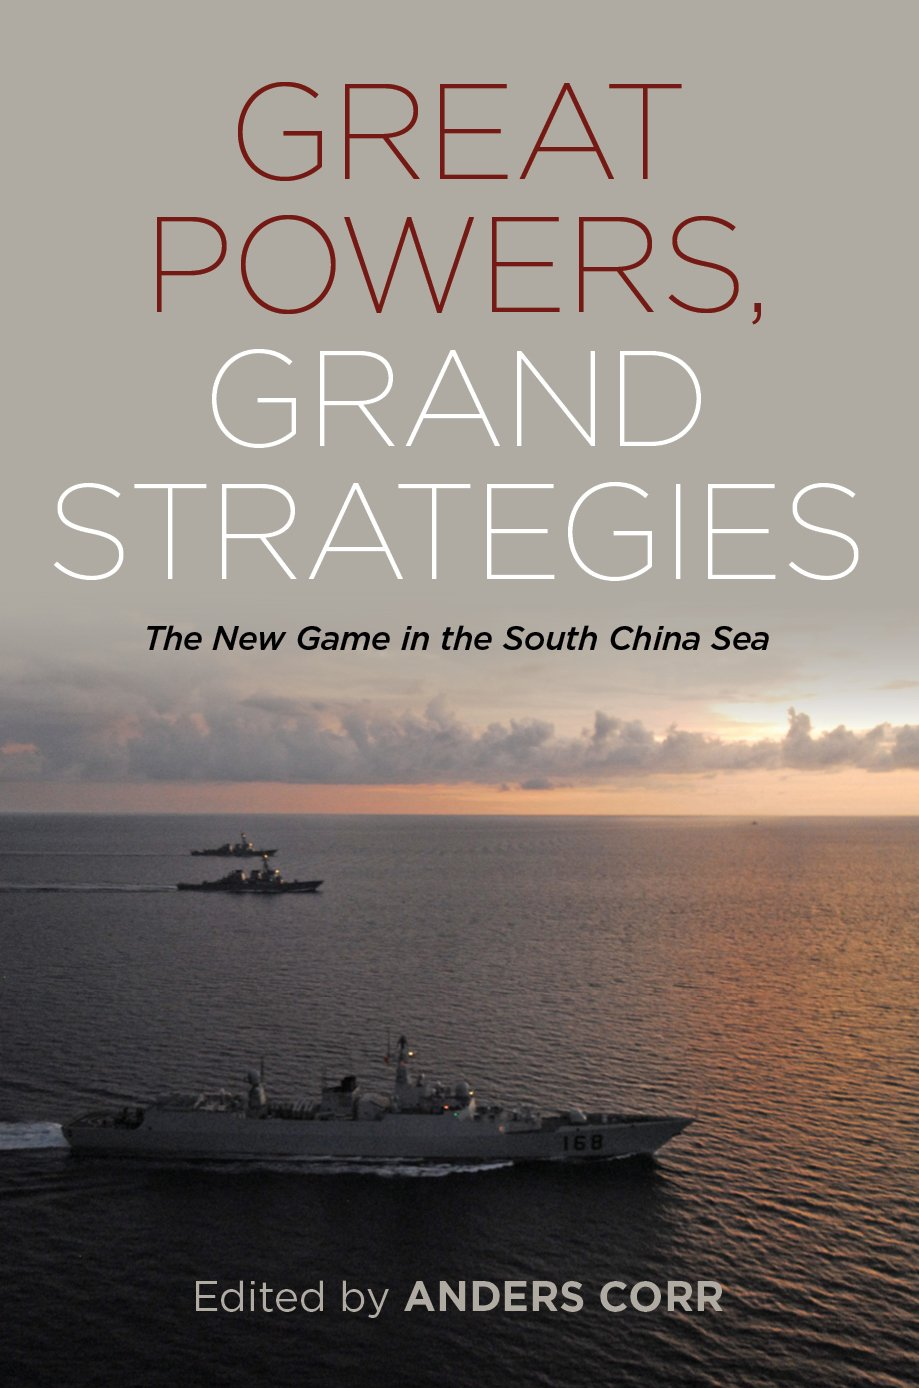 Great Powers, Grand Strategies: The New Game in the South China Sea